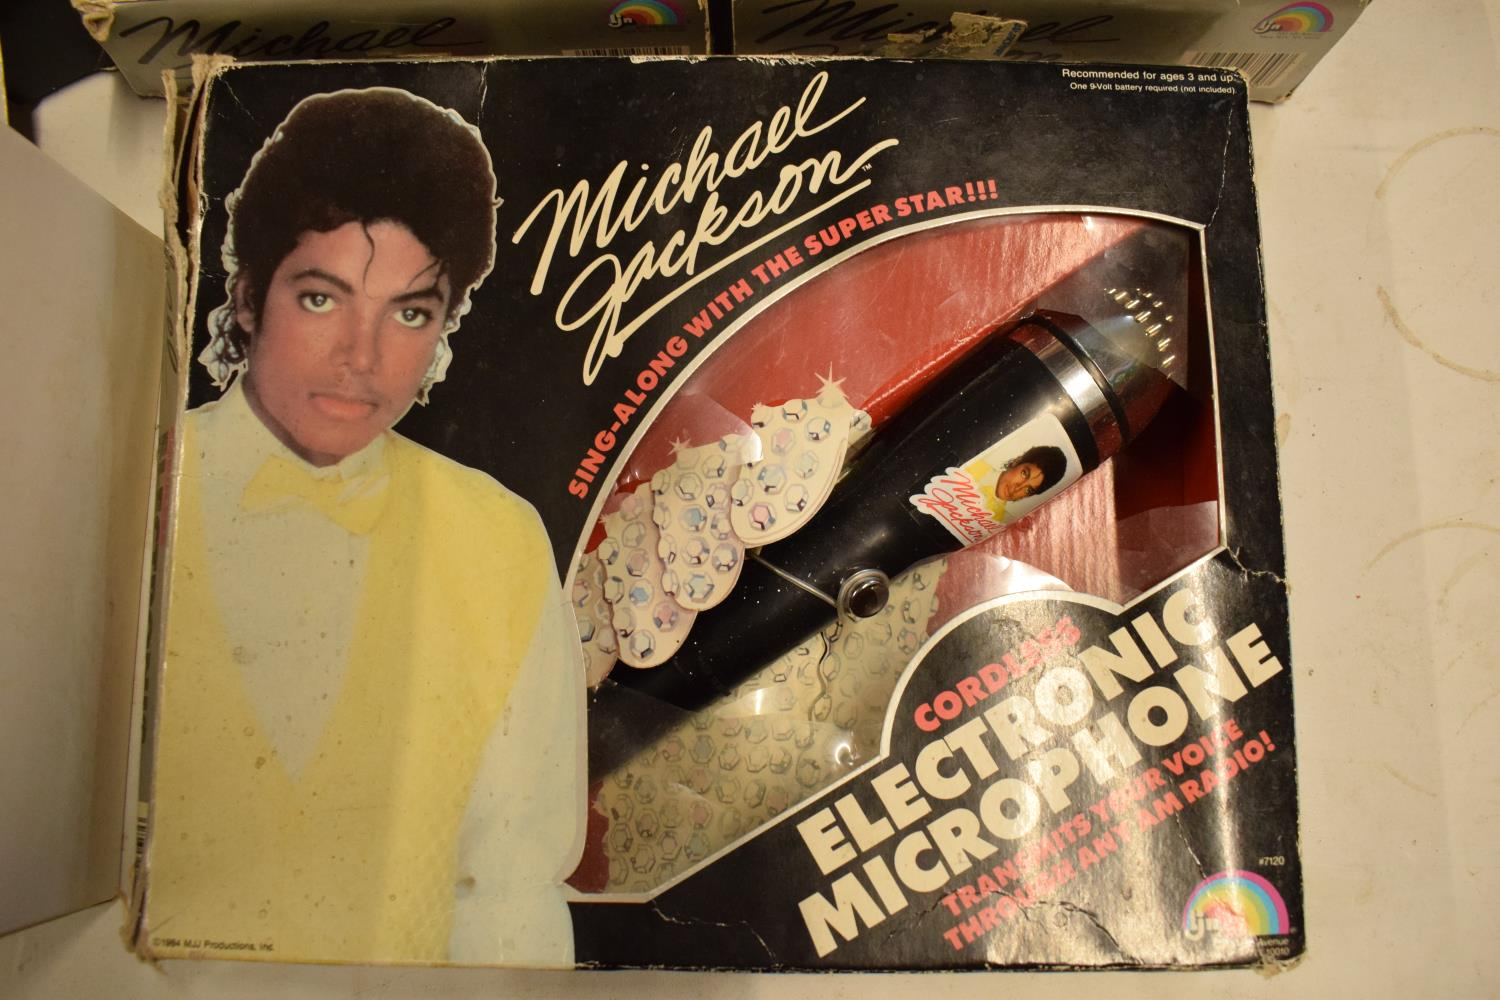 A collection Michael Jackson figures and toys to include 'BAD' figure, electronic microphone and - Image 9 of 9